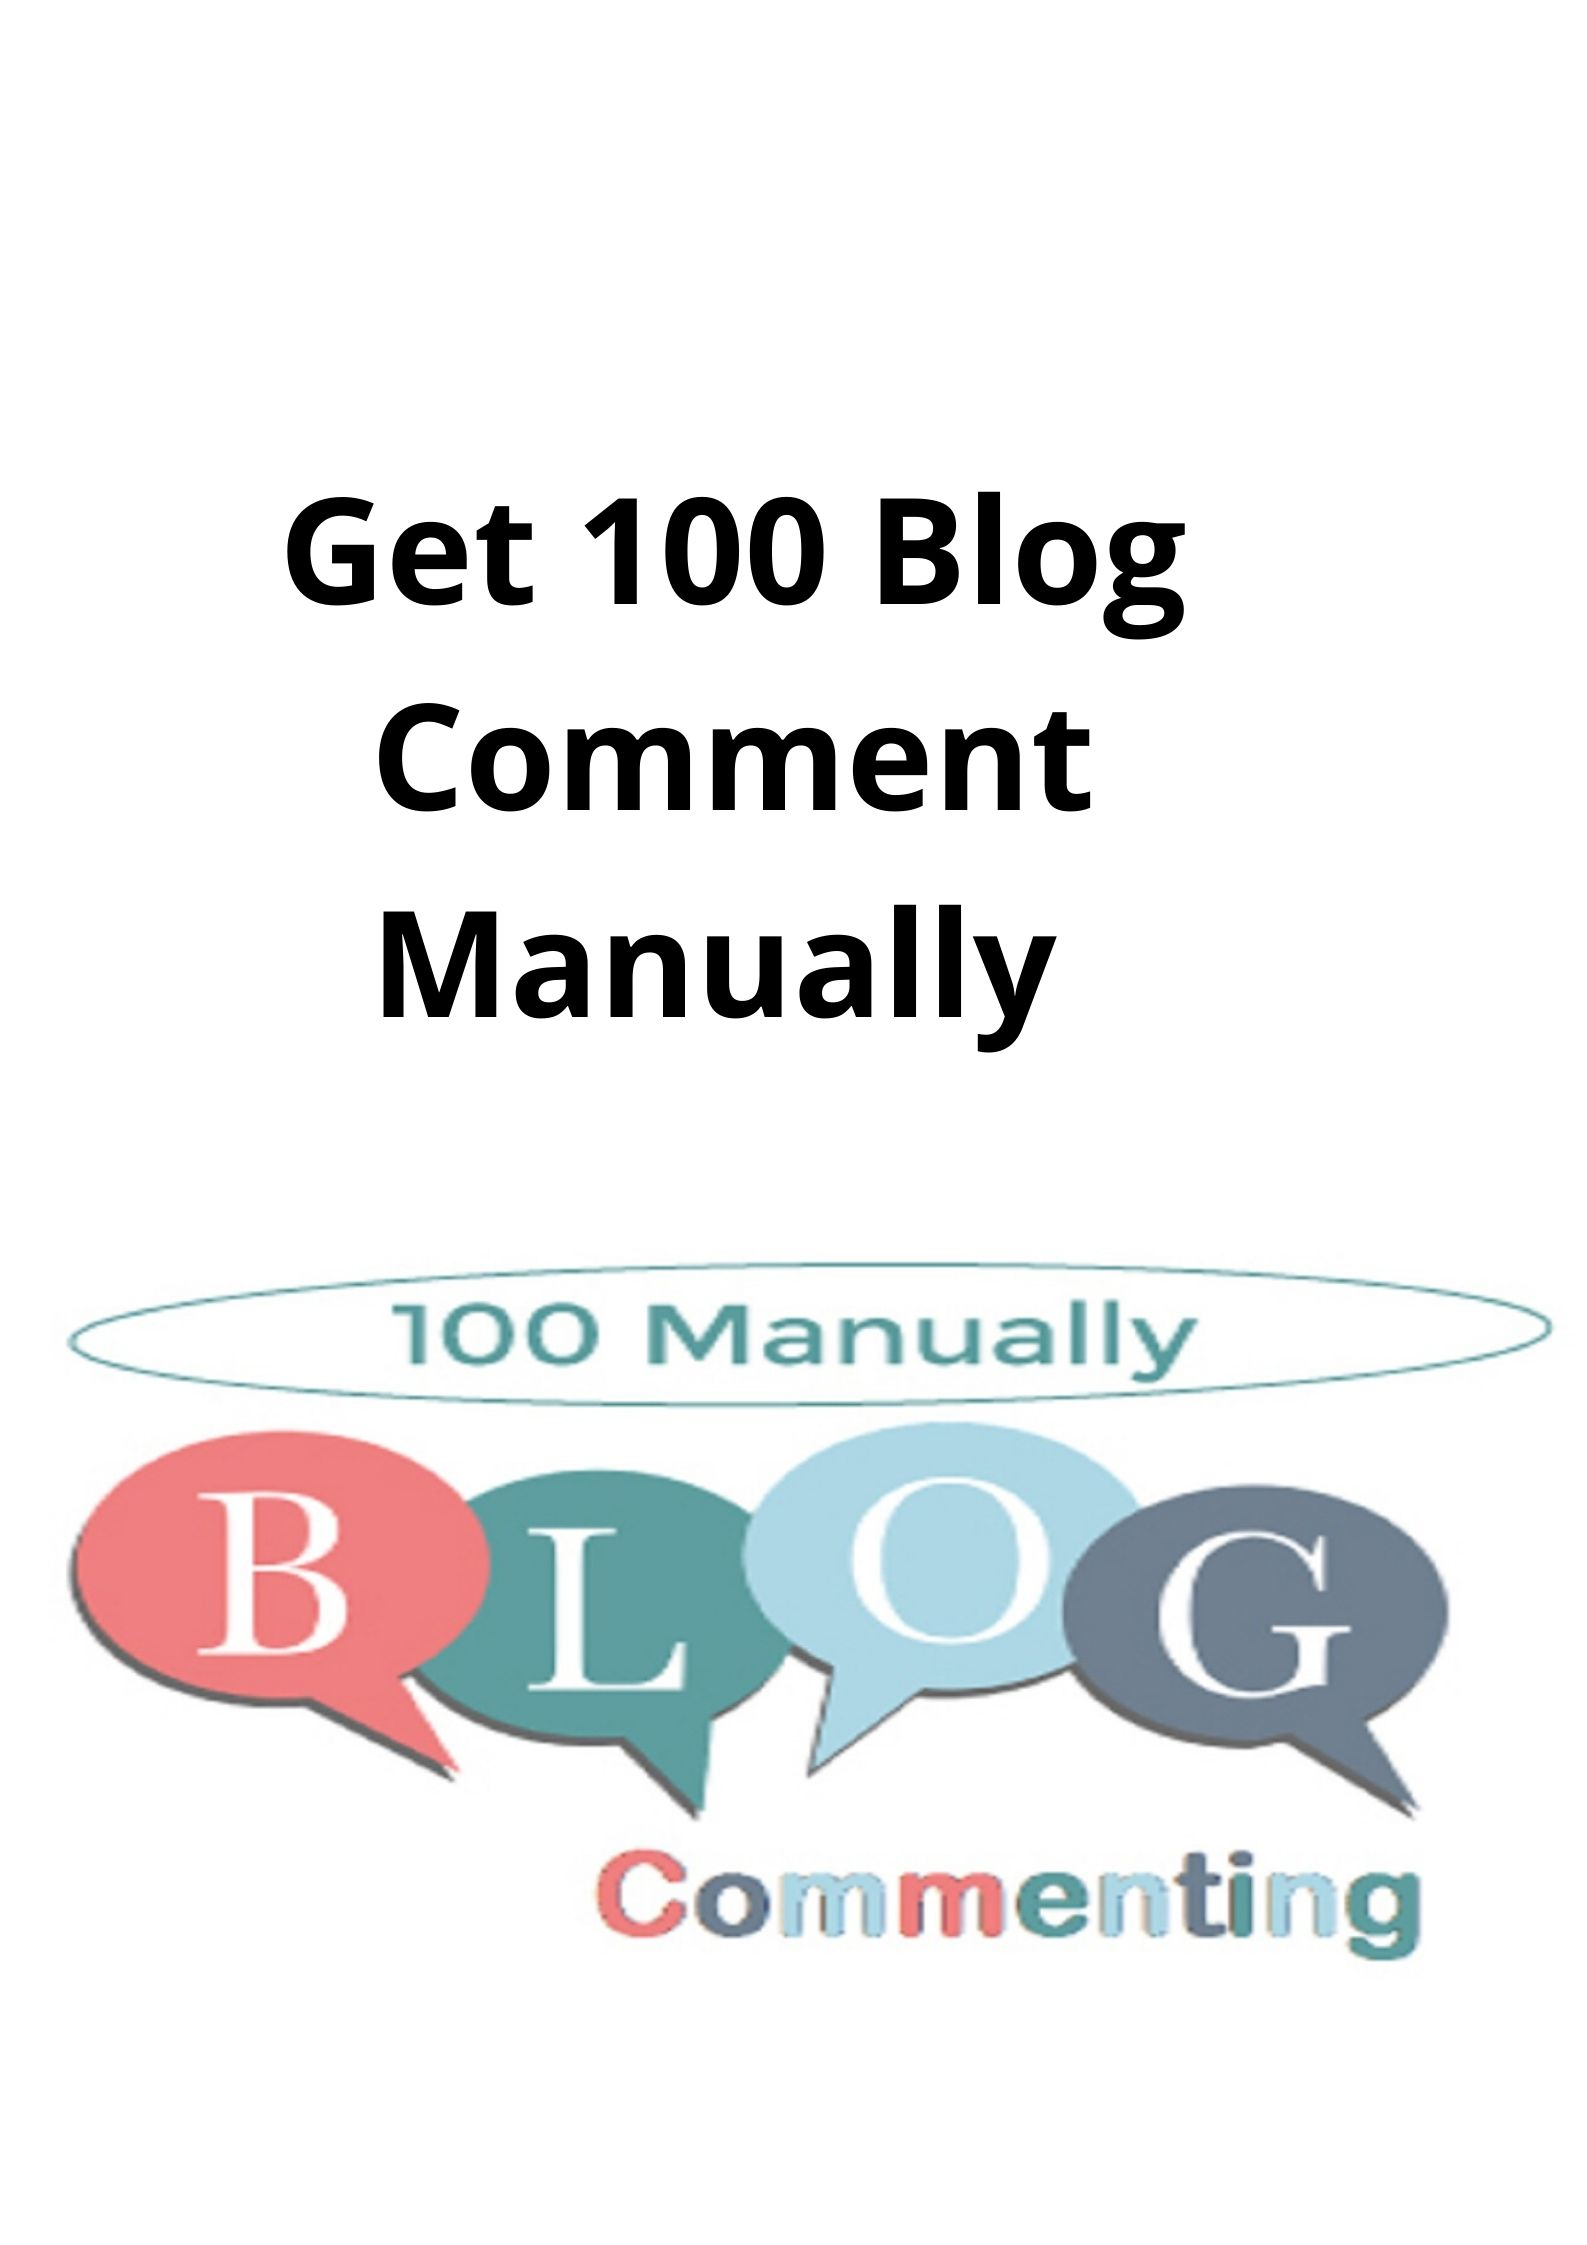 Get 100 Blog Comment Manually in short time